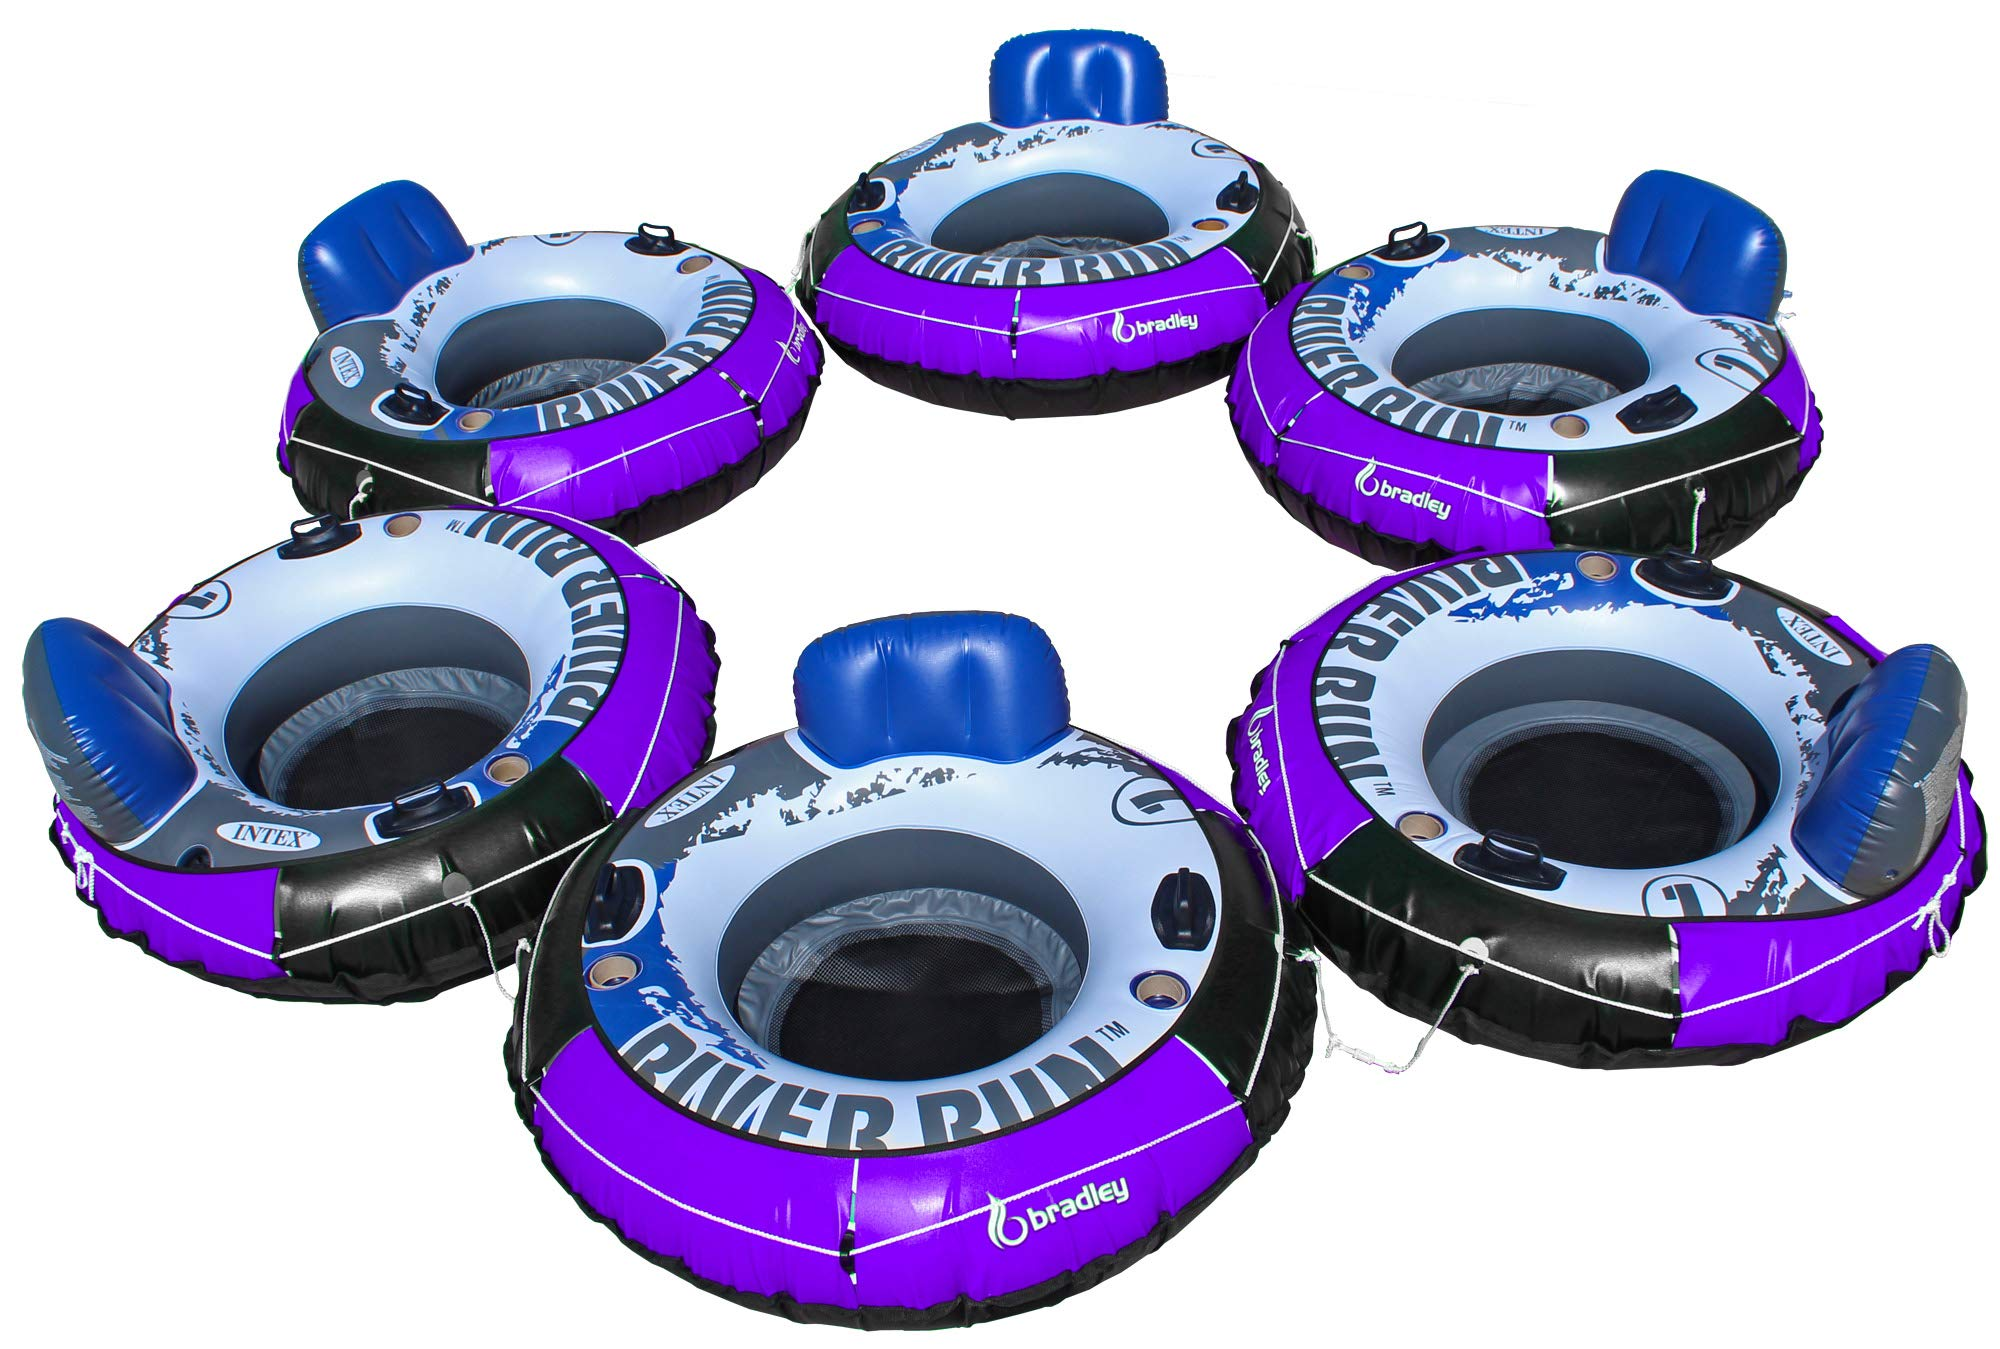 Intex Heavy Duty River Run Tube with Cover (6 Pack) | Floating Lounger | River Tube